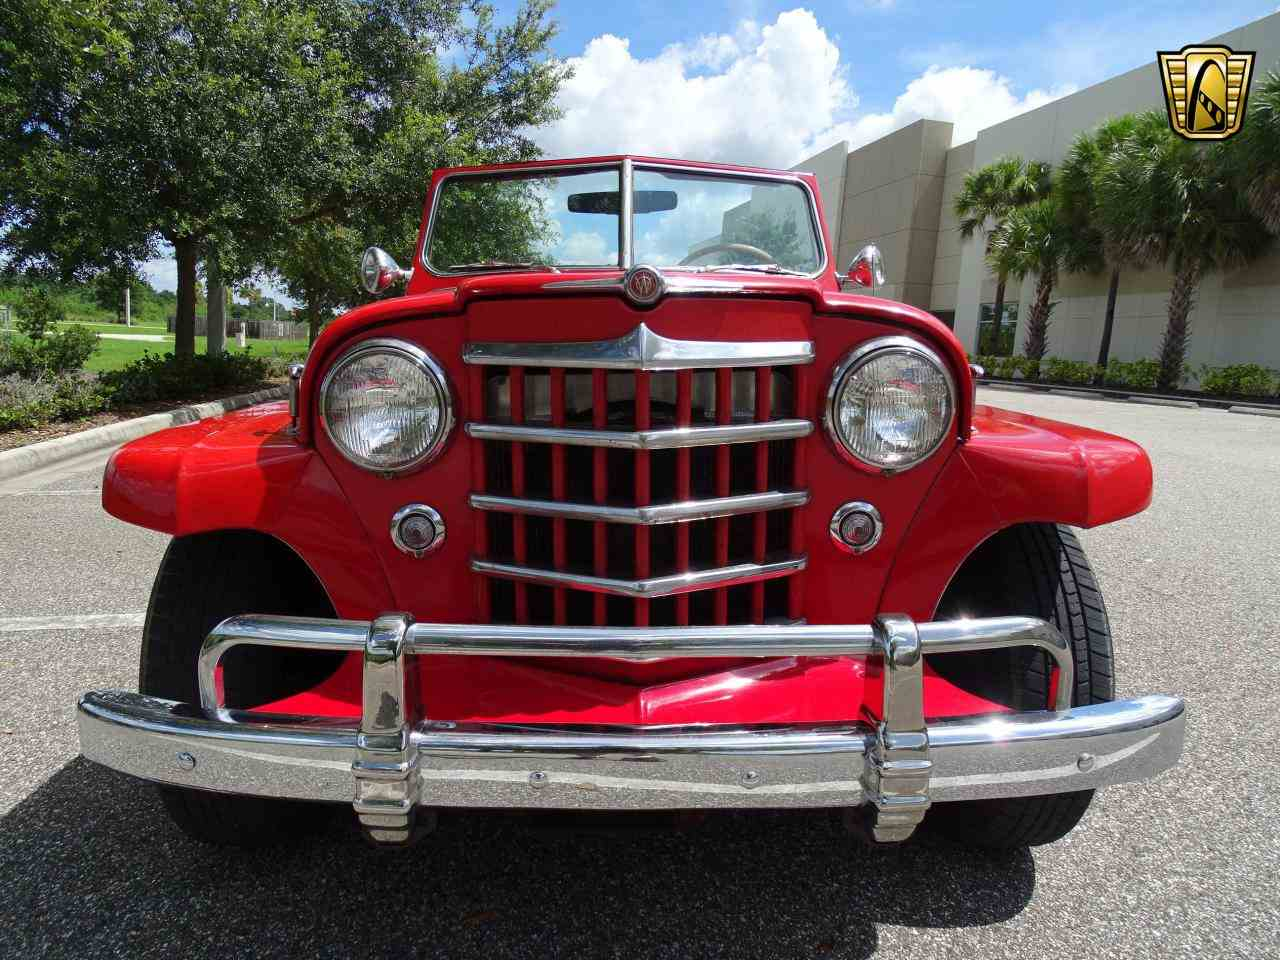 Large Picture of '50 Jeep Willys located in Ruskin Florida - $14,995.00 - LDUL